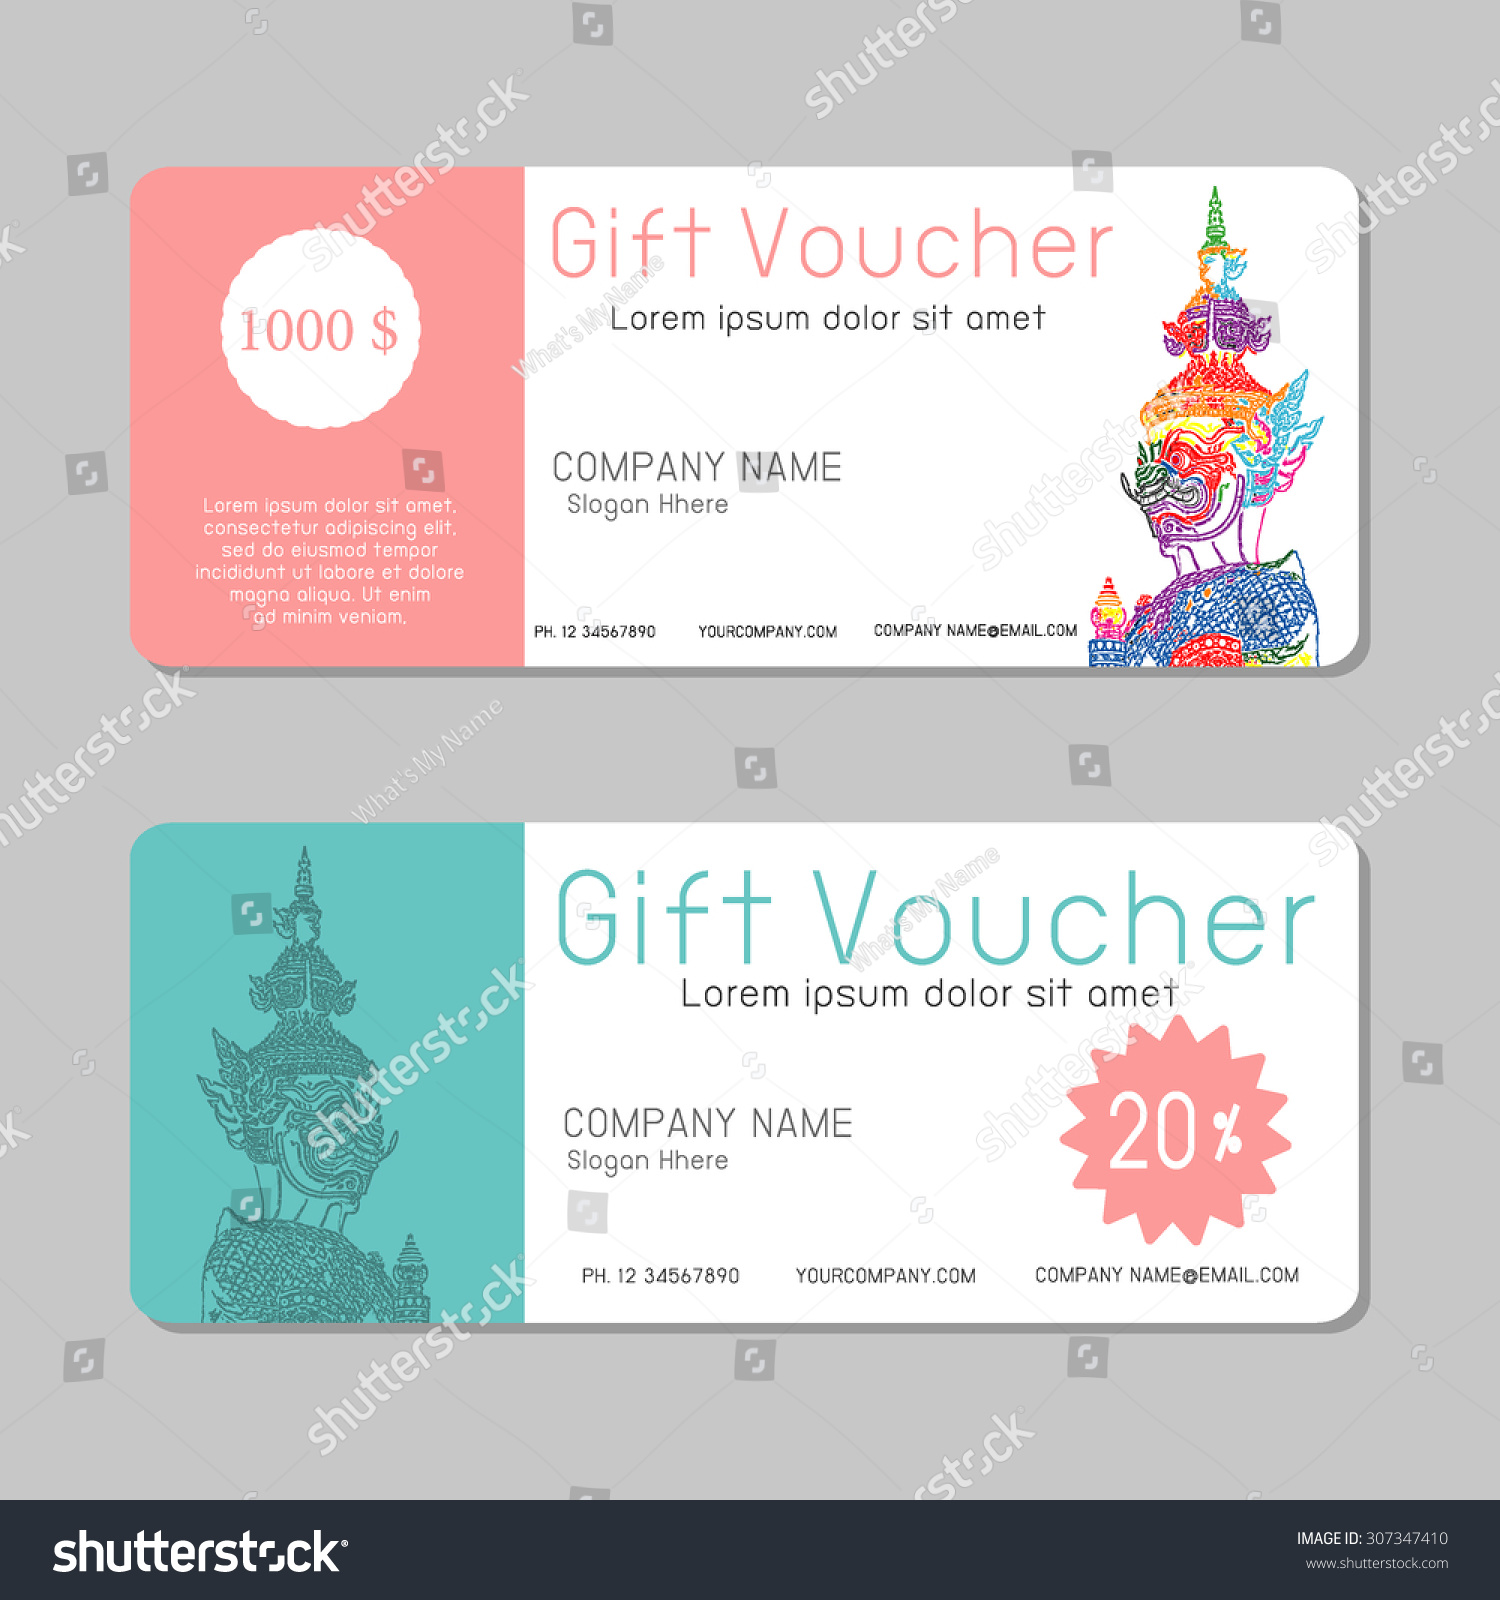 voucher template for word